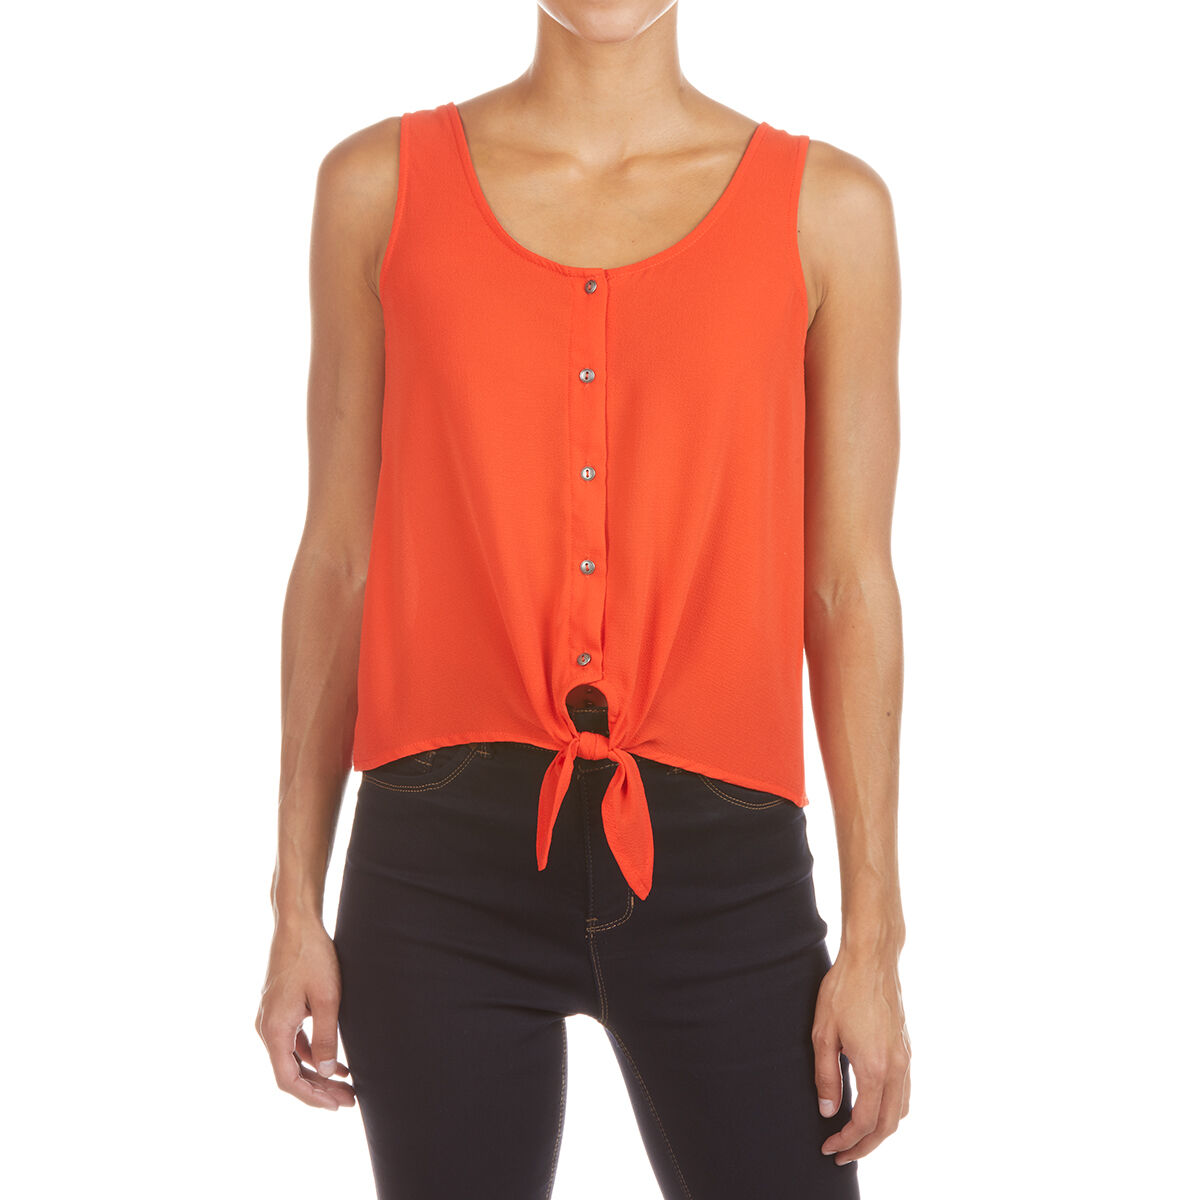 Pink Rose Juniors' Sleeveless Woven Shirt With Button Front And Buttom Tie - Orange, M